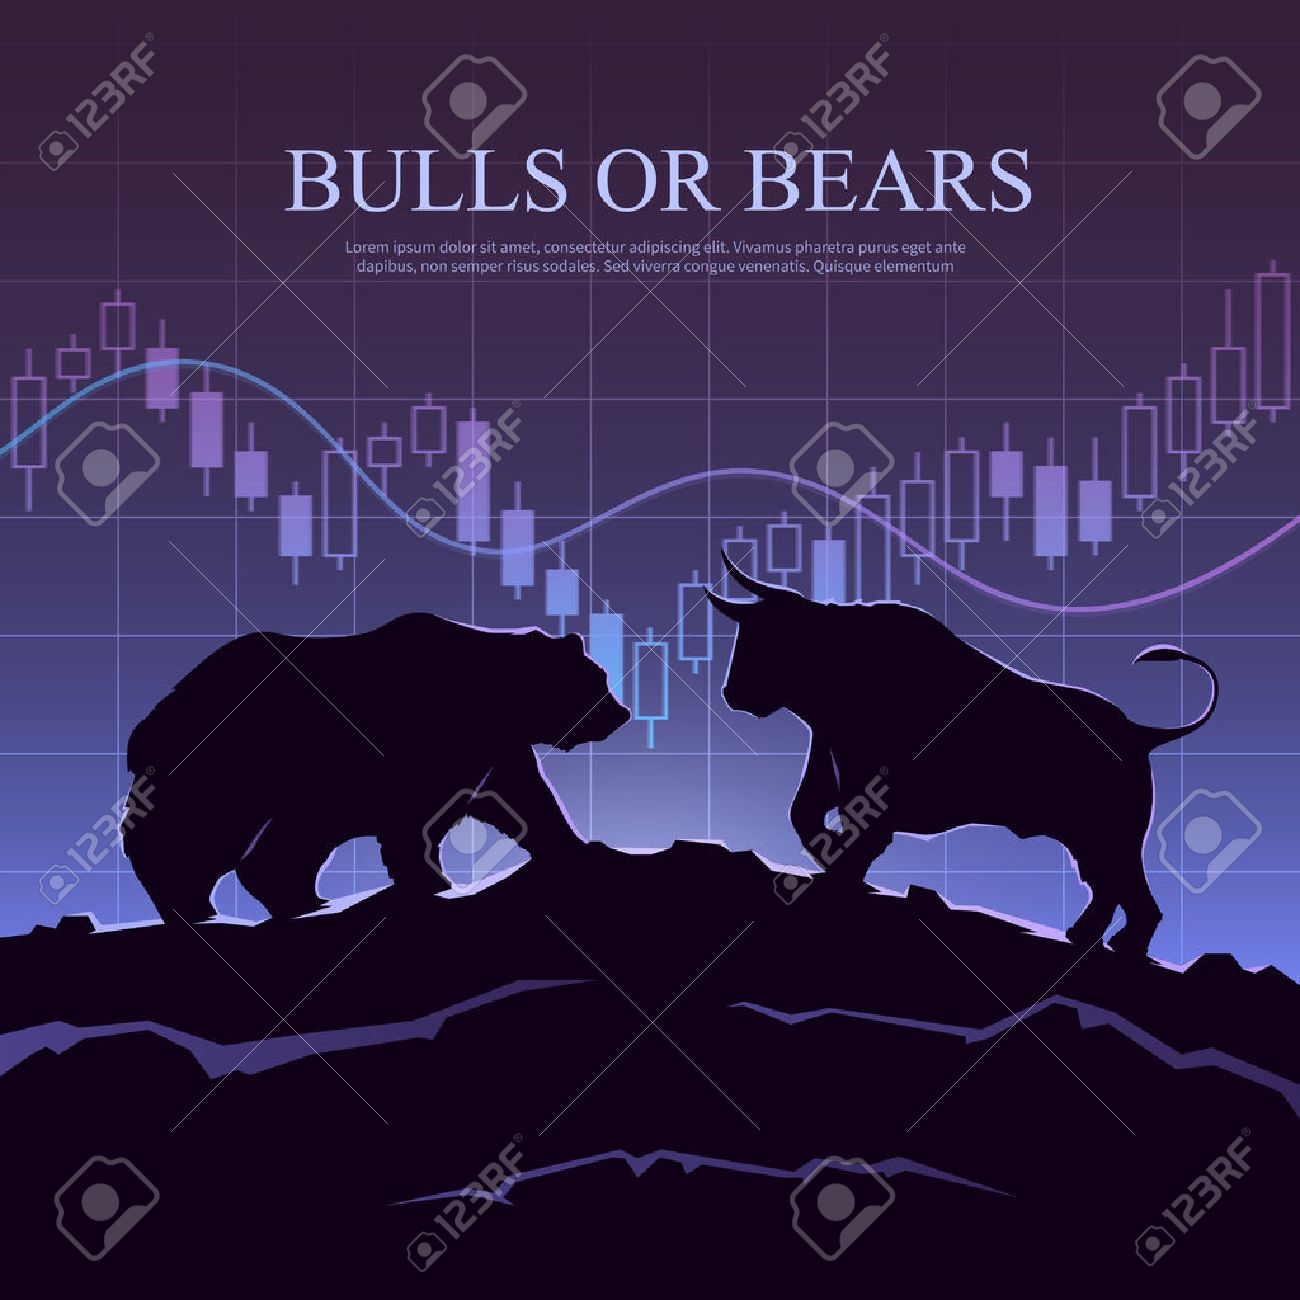 Stock exchange trading banner. The bulls and bears struggle: what type of investor will you be. Stock market concept illustration. Modern flat design. - 54576584